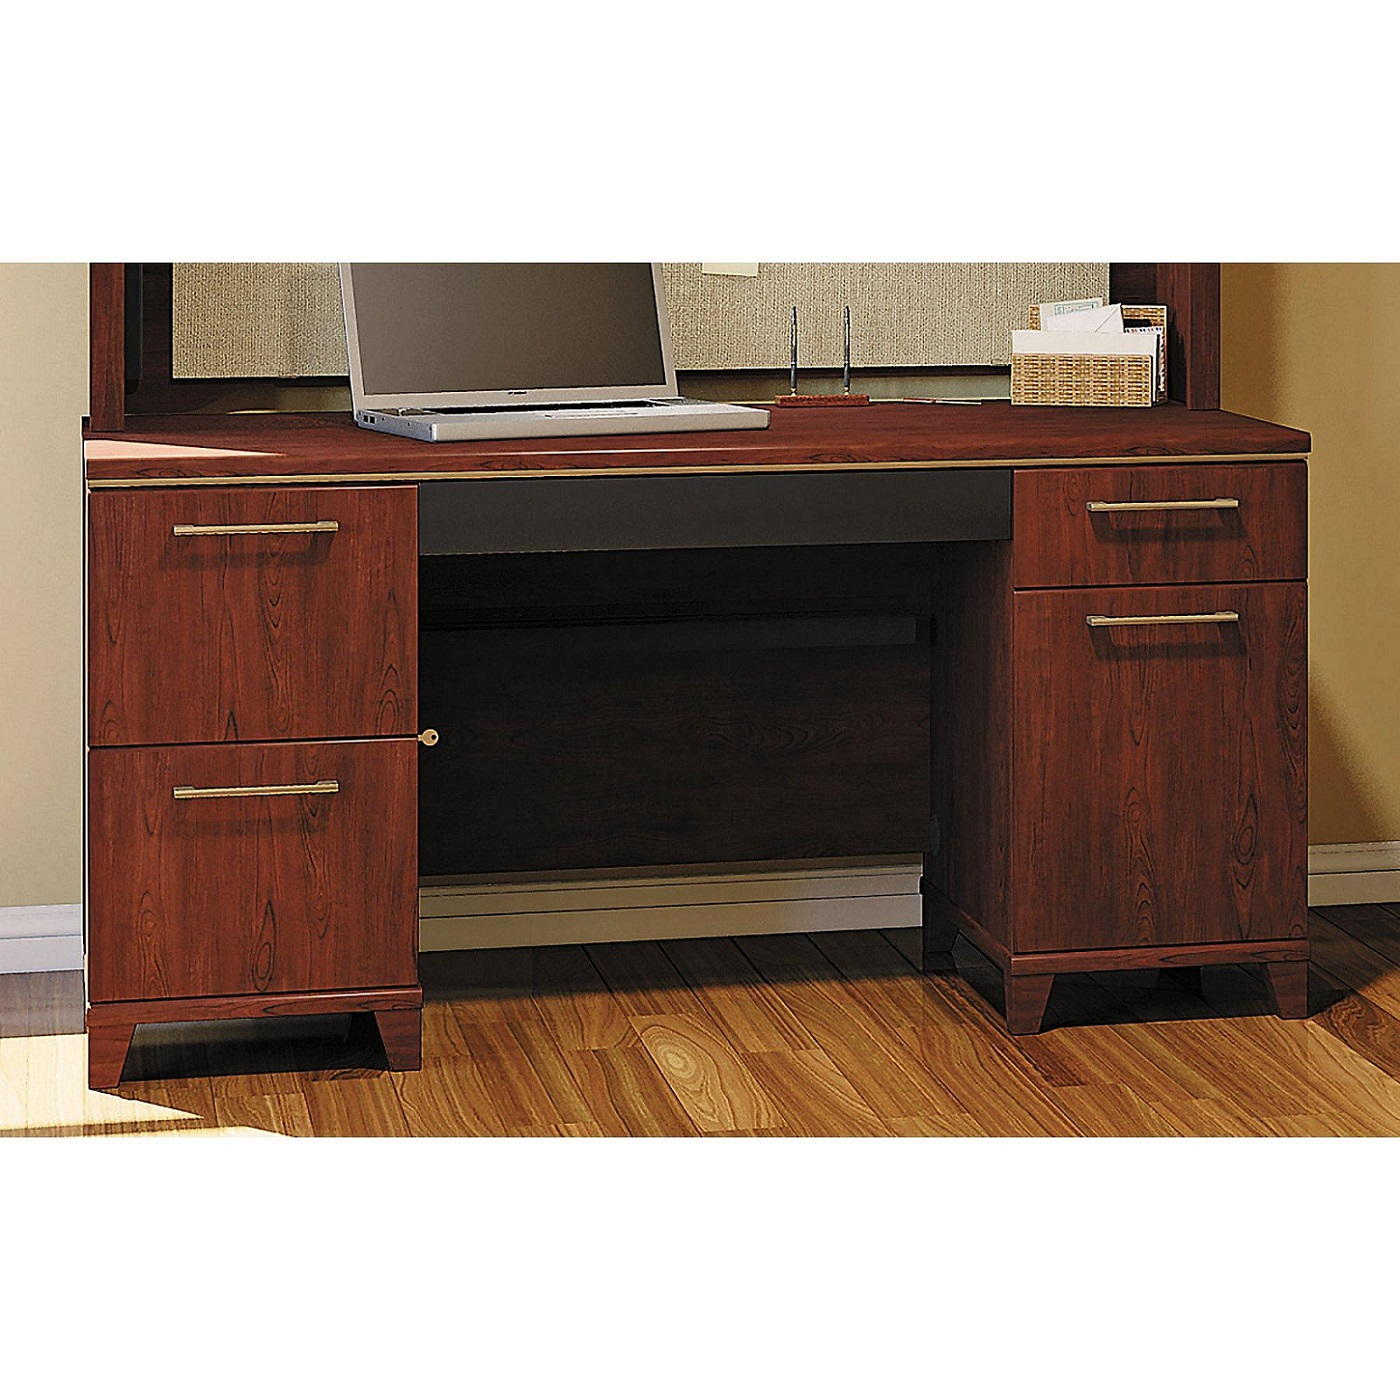 "BUSH BUSINESS FURNITURE HARVEST CHERRY 60""W OFFICE DESK - 2 PEDS EH-2960CS-03K. ECO FRIENDLY FURNITURE. FREE SHIPPING:"